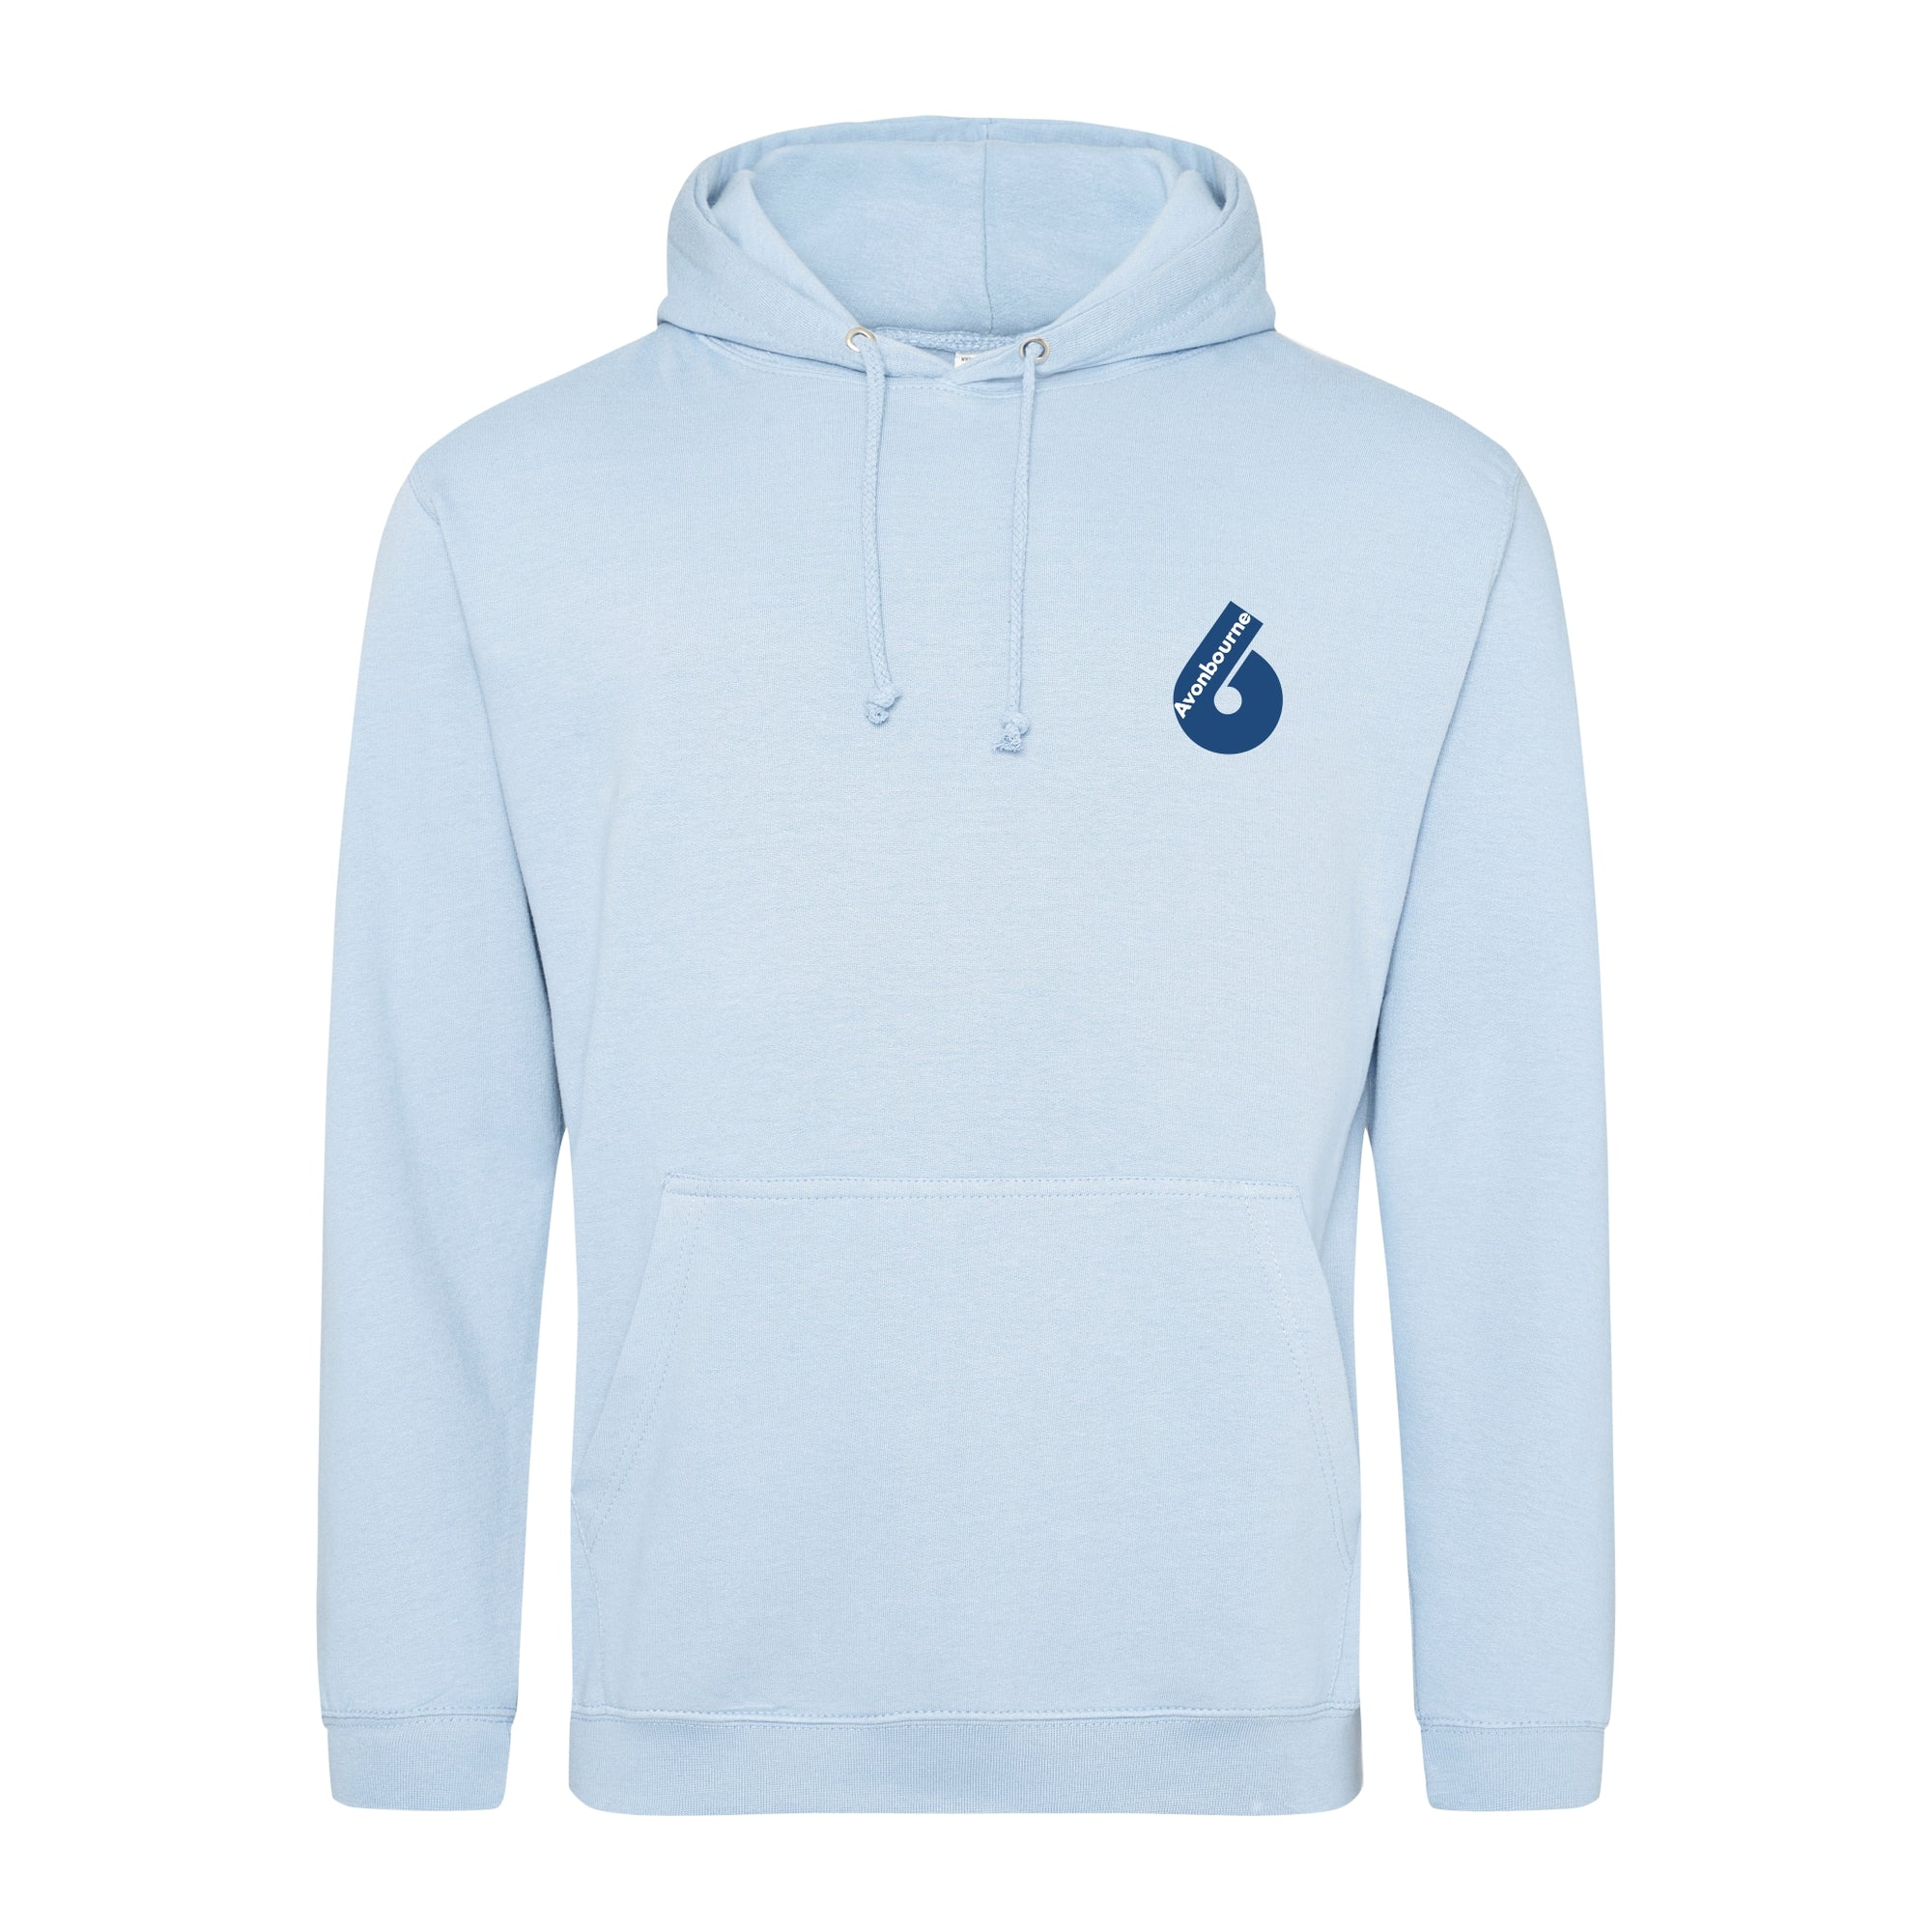 Avonbourne 6th Form Leavers Hoody 2019 - Sky Blue